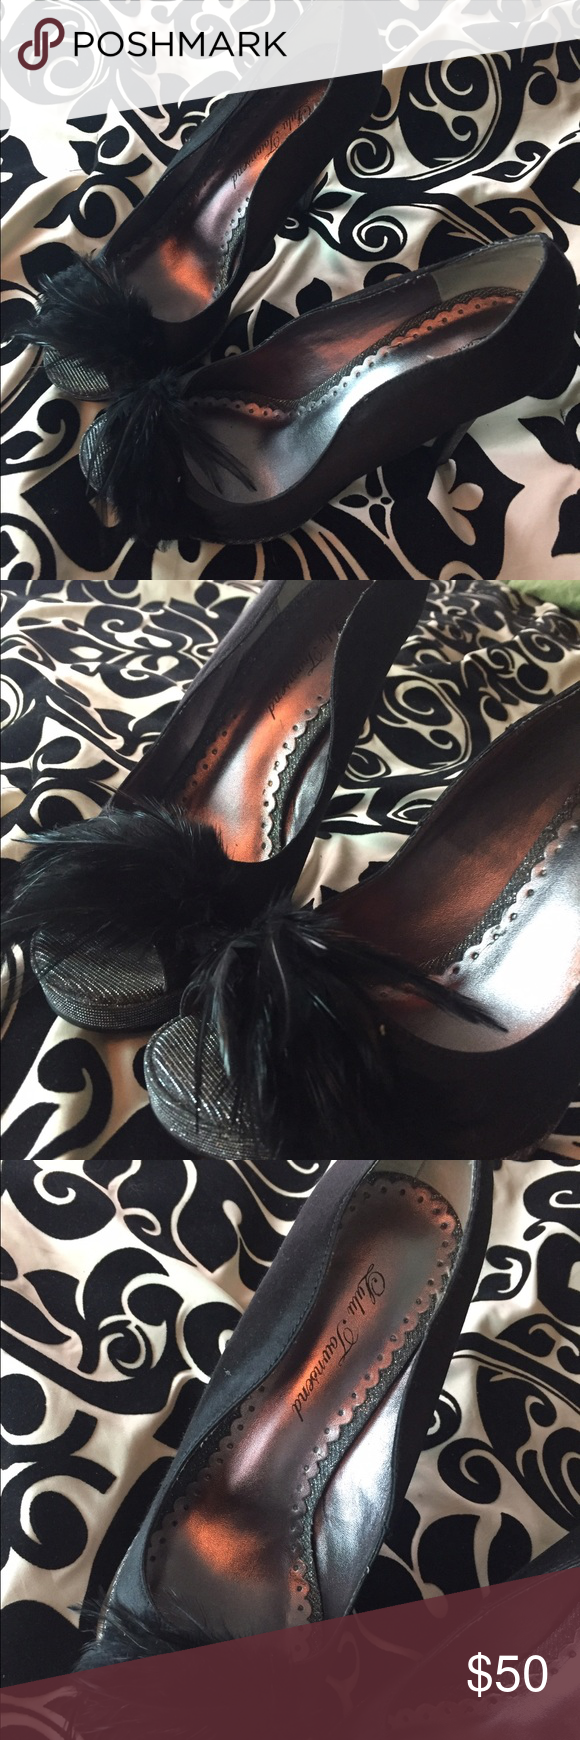 Lulu Townsend black leather heels Super sexy black heels. With silver trim.and feather peep toe. Lulu Townsend Shoes Heels